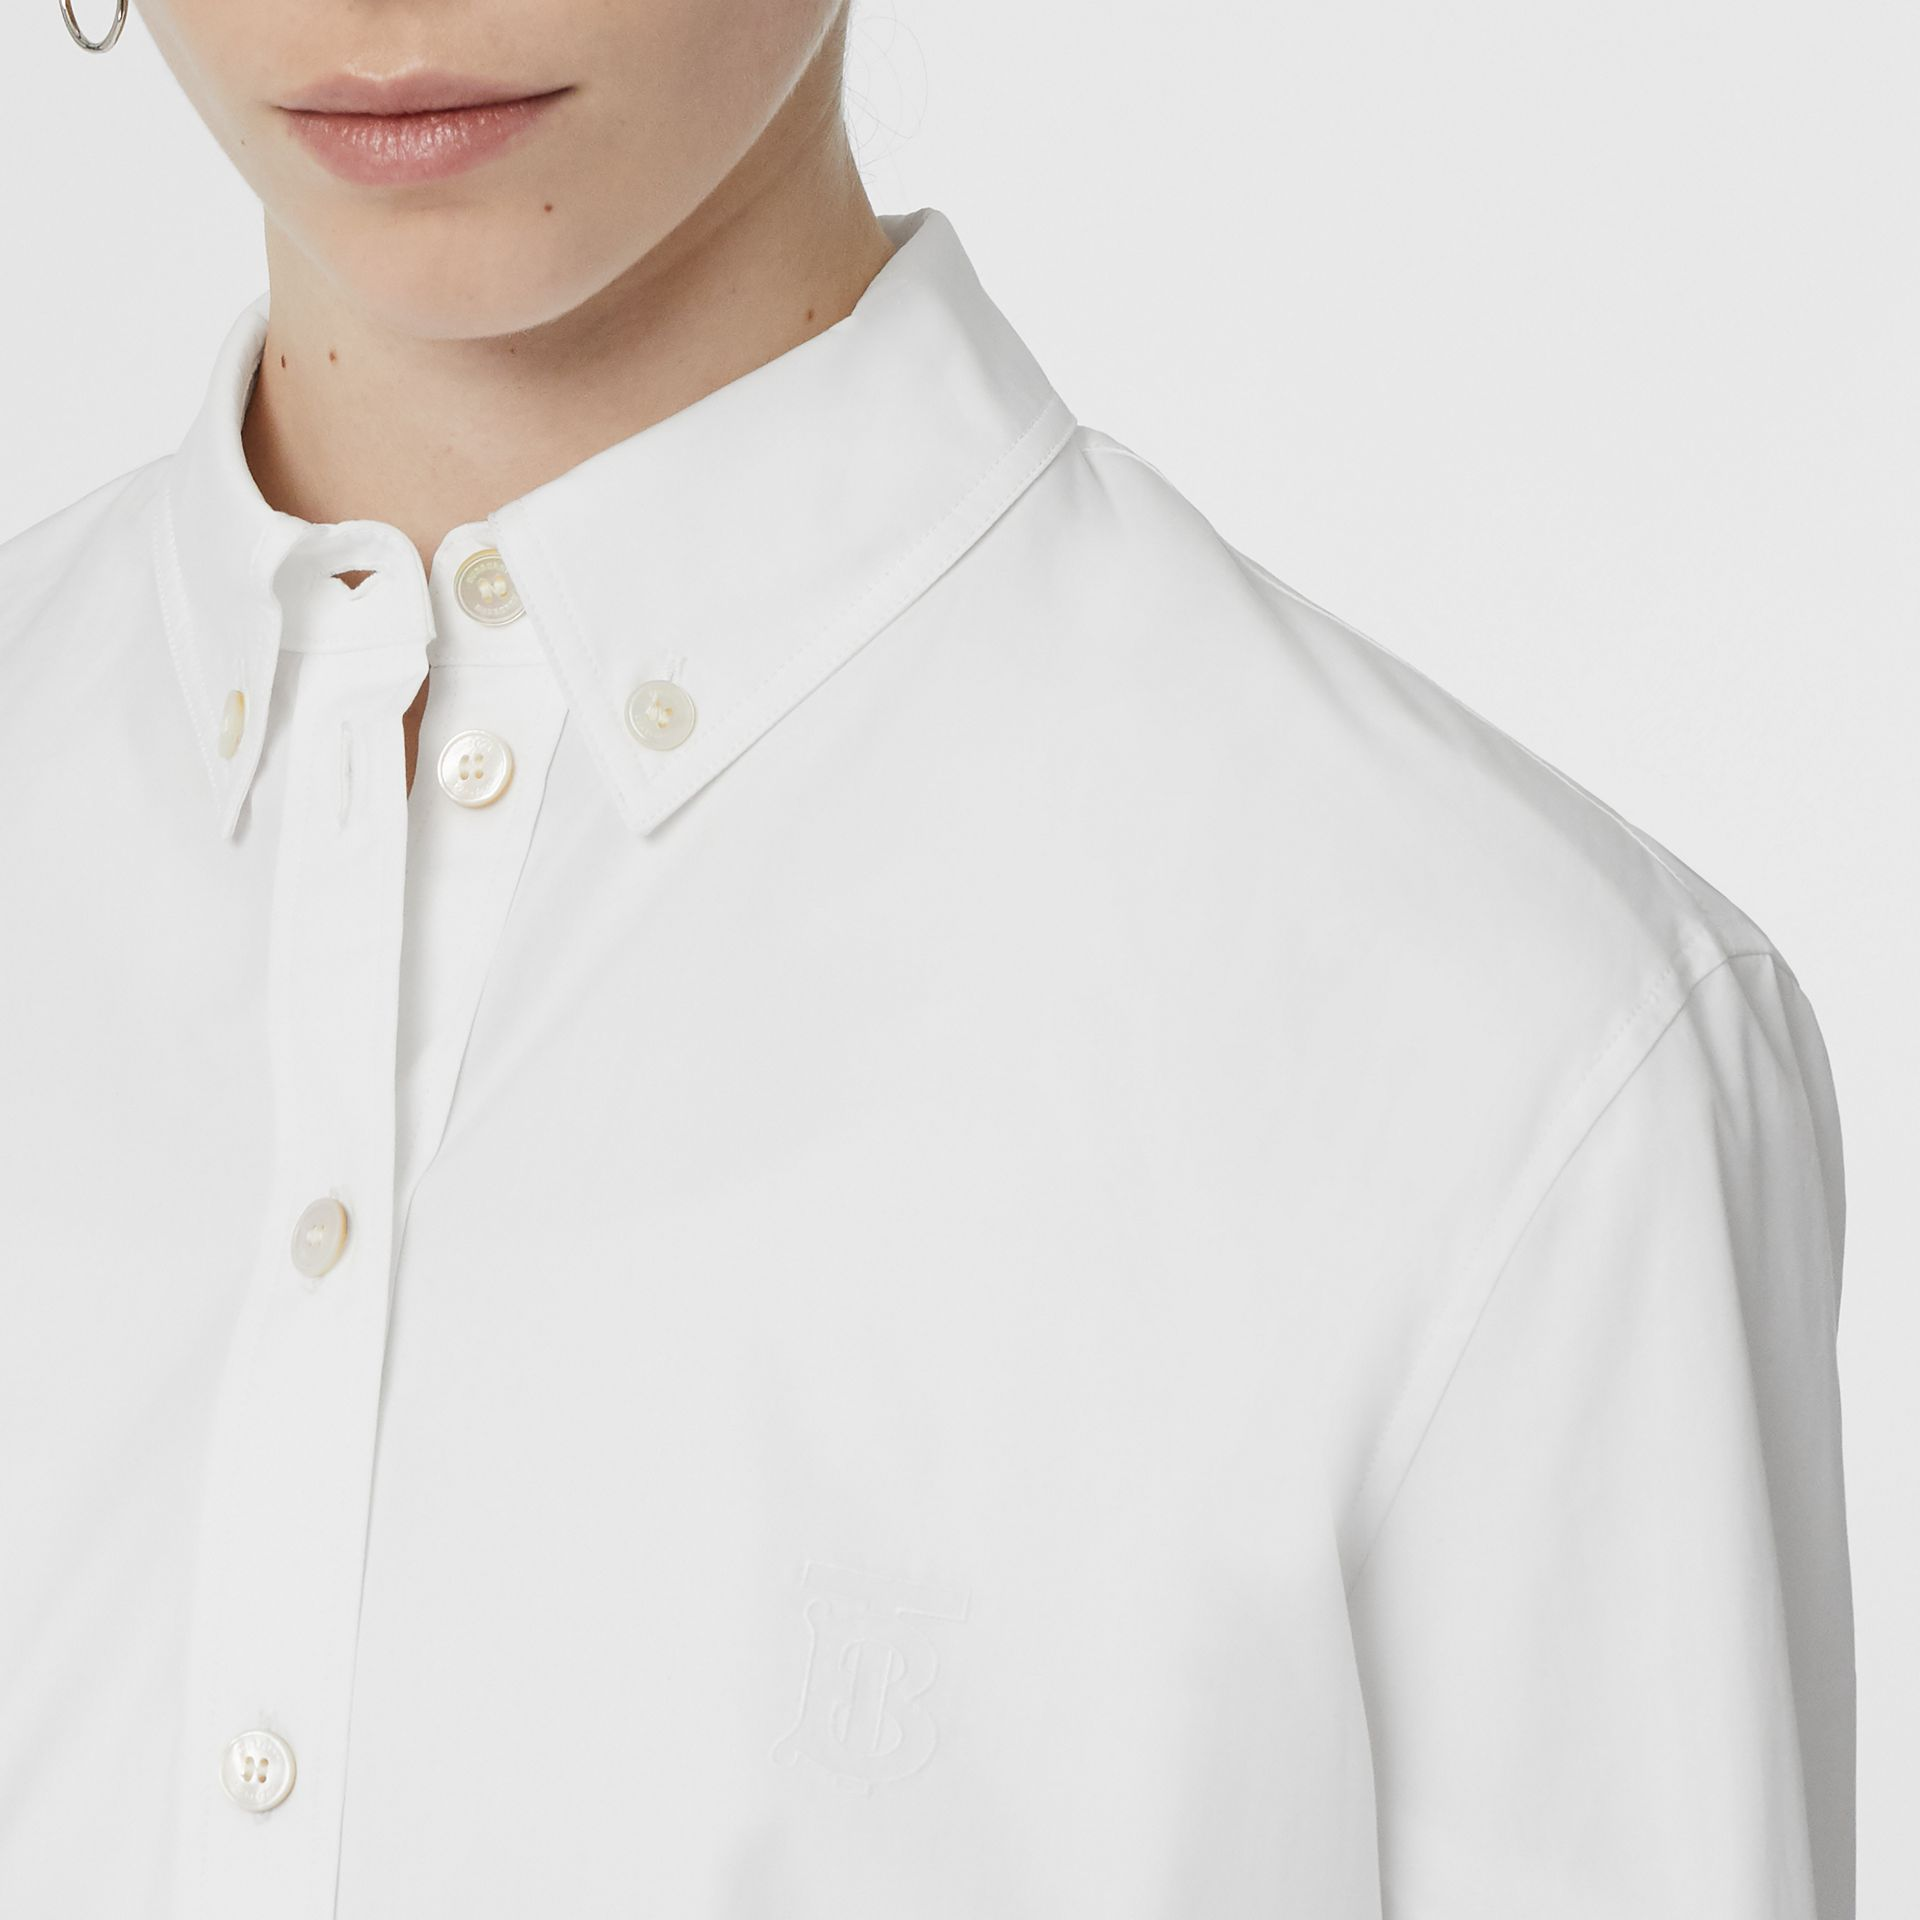 Button-down Collar Monogram Motif Cotton Shirt in White - Women | Burberry - gallery image 1